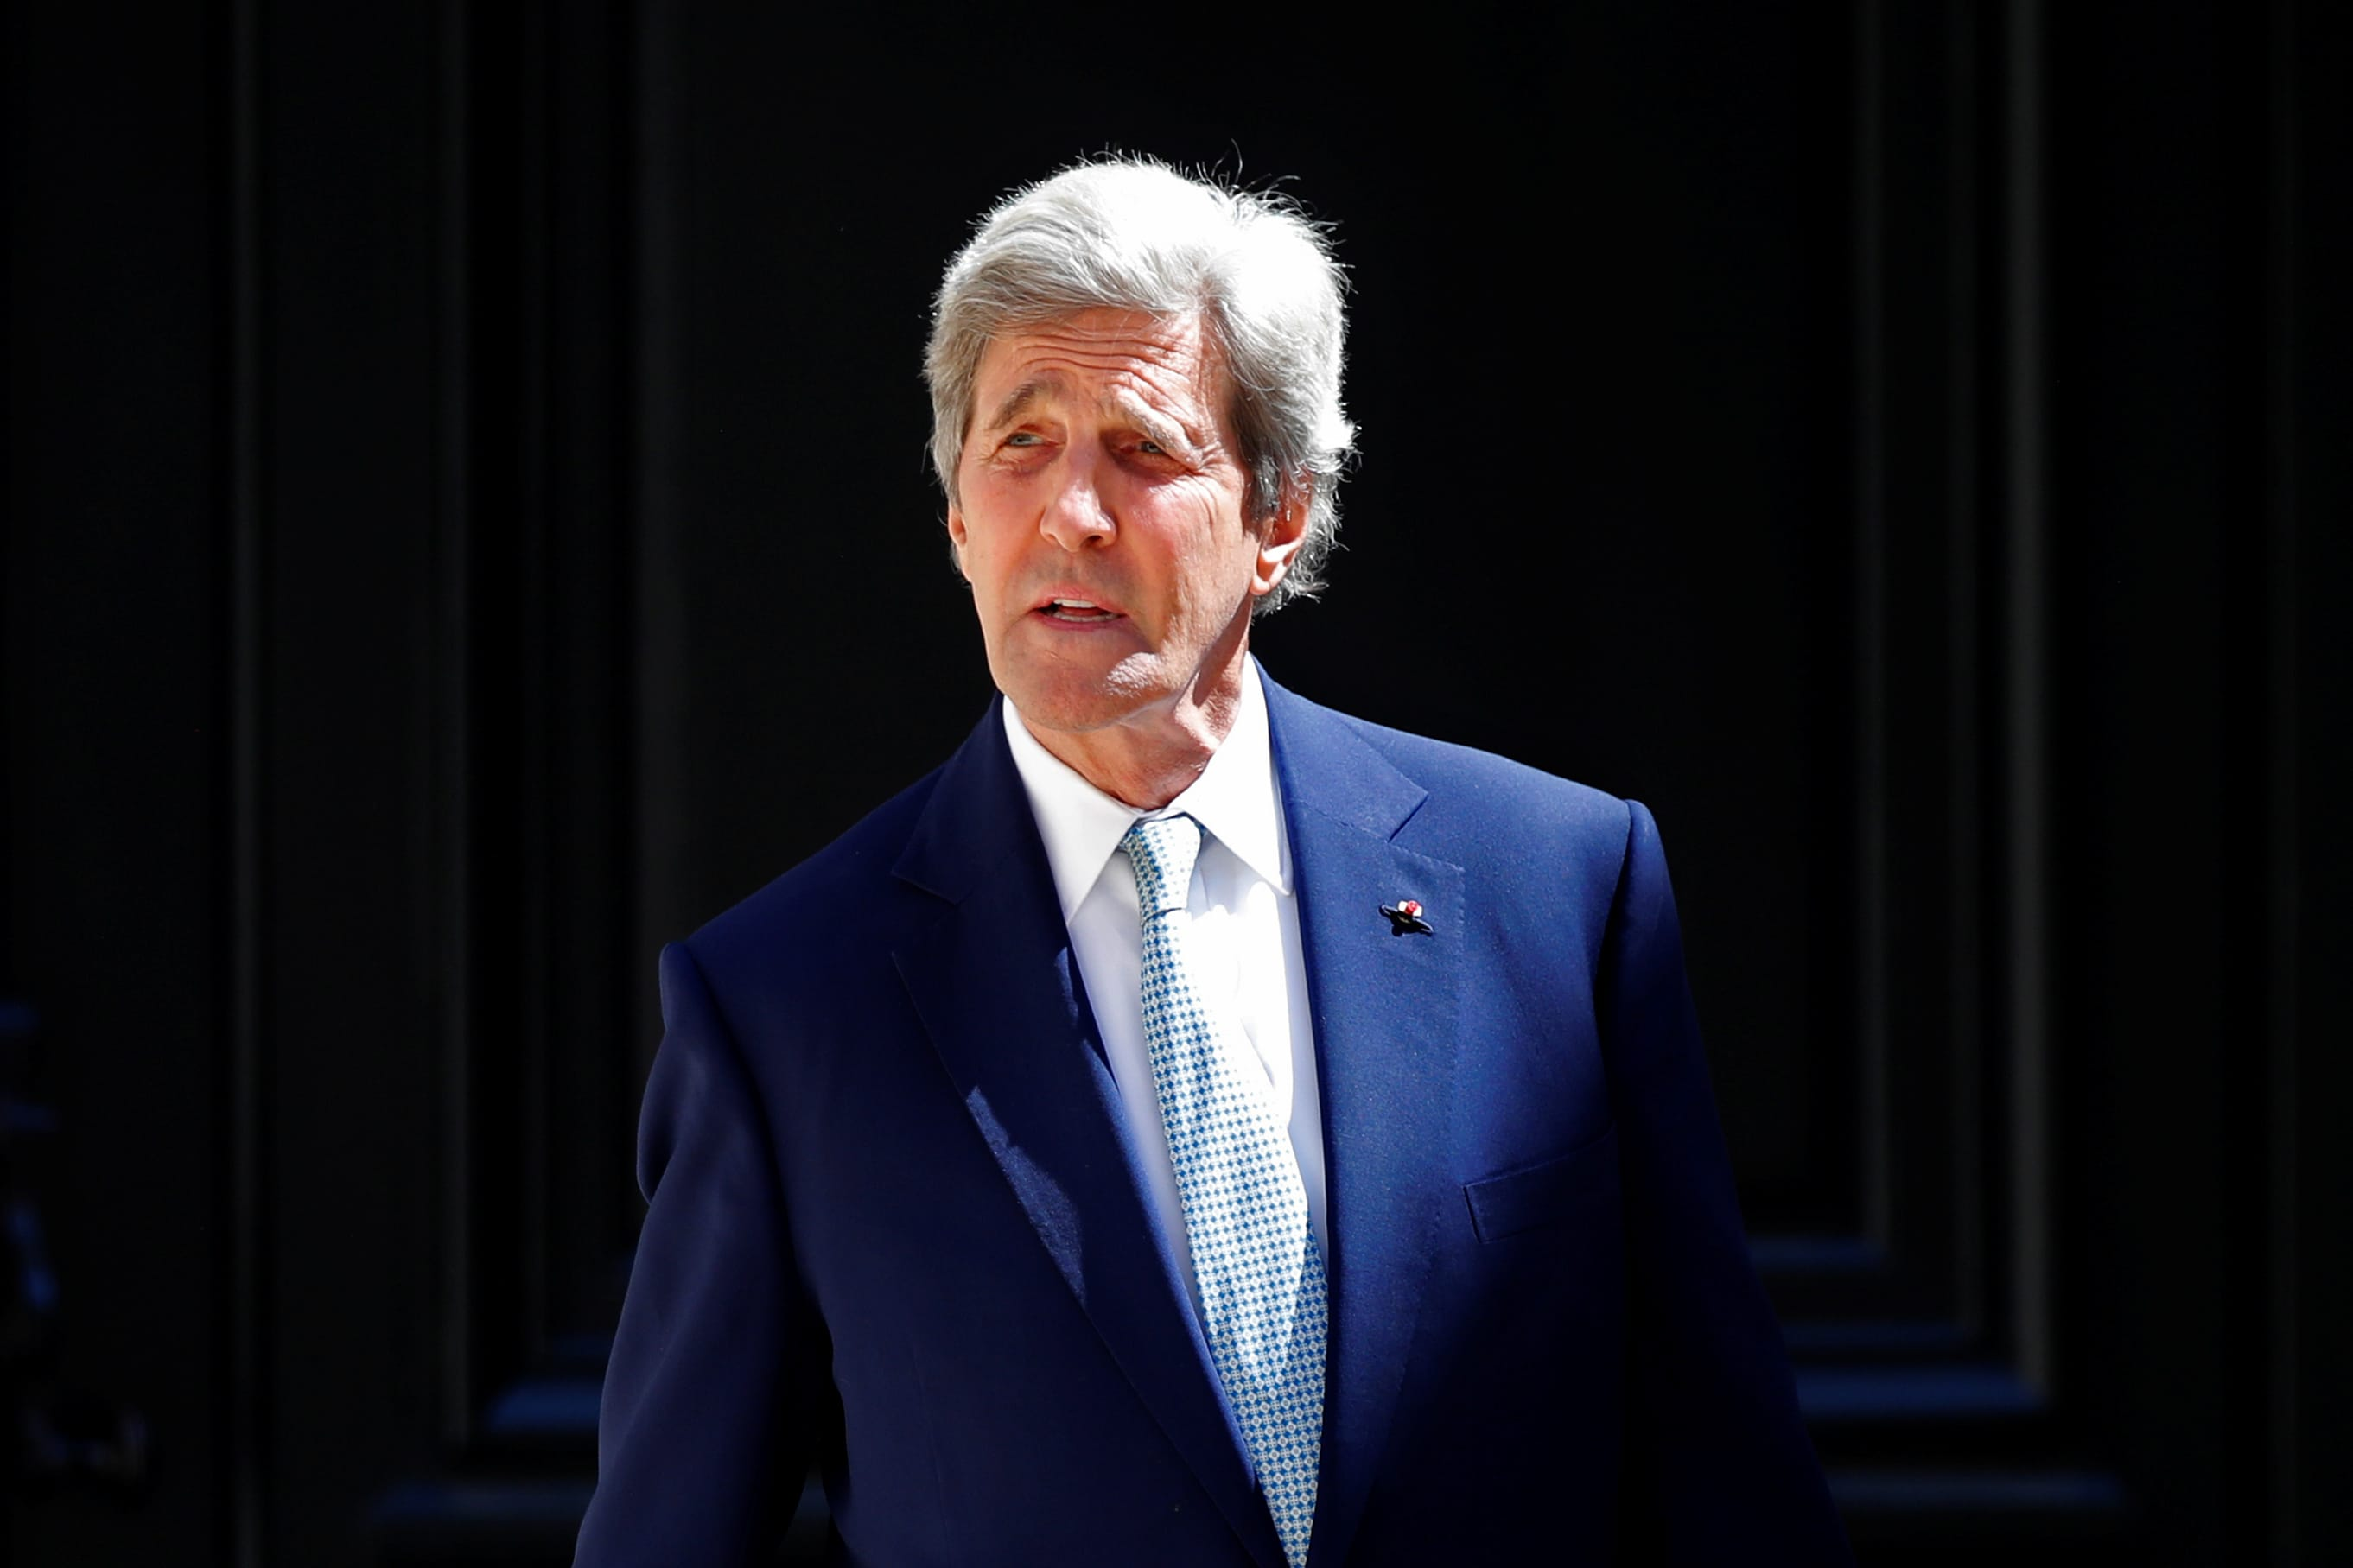 'I have not said a word': John Kerry rejects Pompeo's criticism over meetings with Iran officials